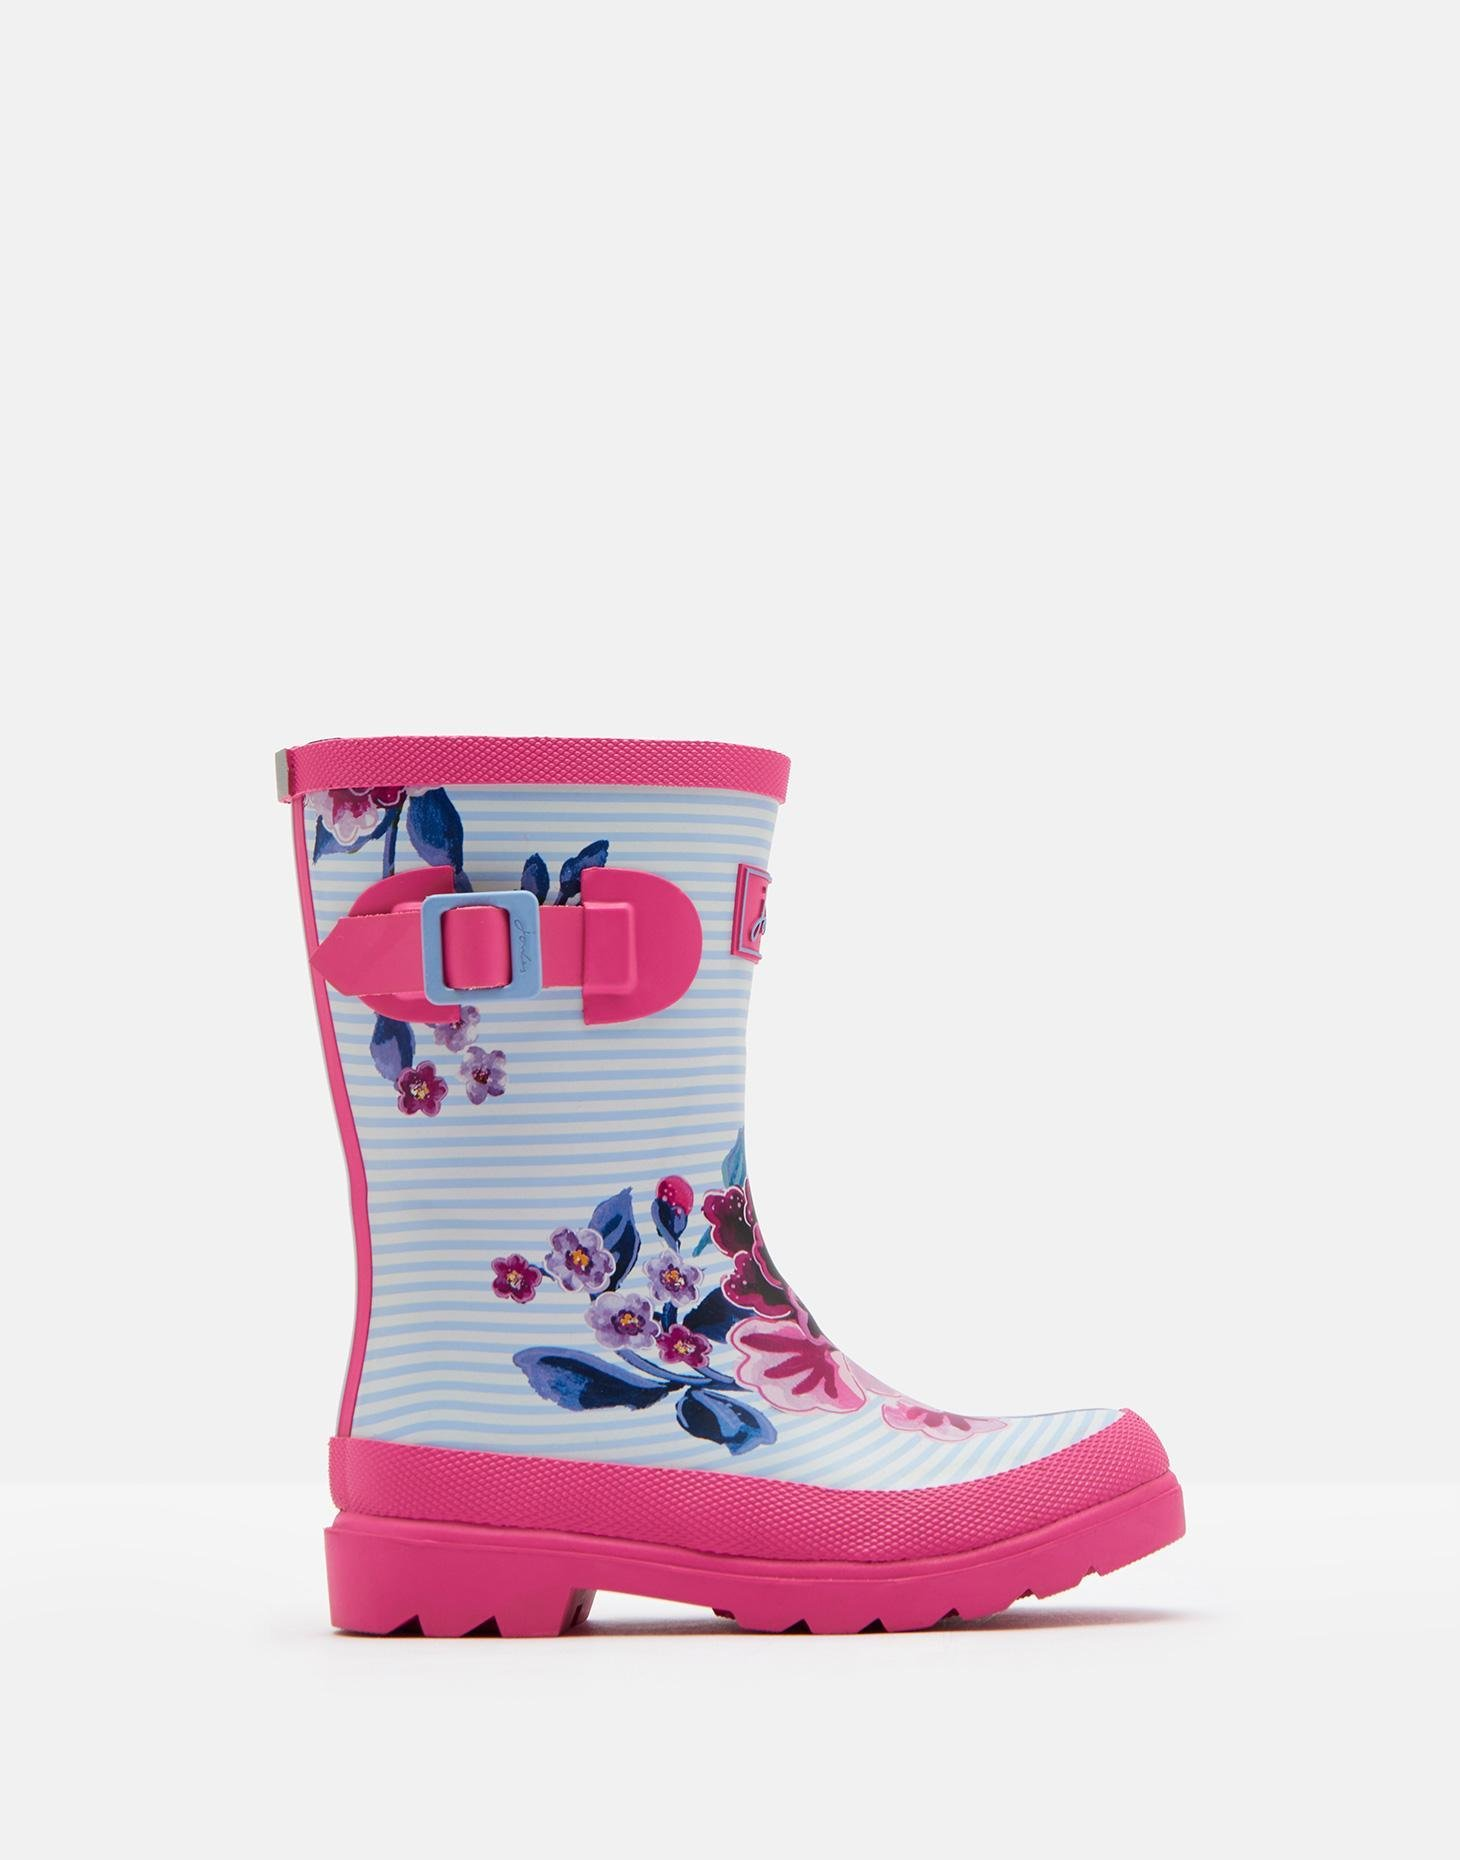 Joules Kids Baby Girl's Printed Welly Rain Boot (Toddler/Little Kid/Big Kid) Sky Blue Chinoiserie Floral 1 M US Little Kid by Joules Kids (Image #1)